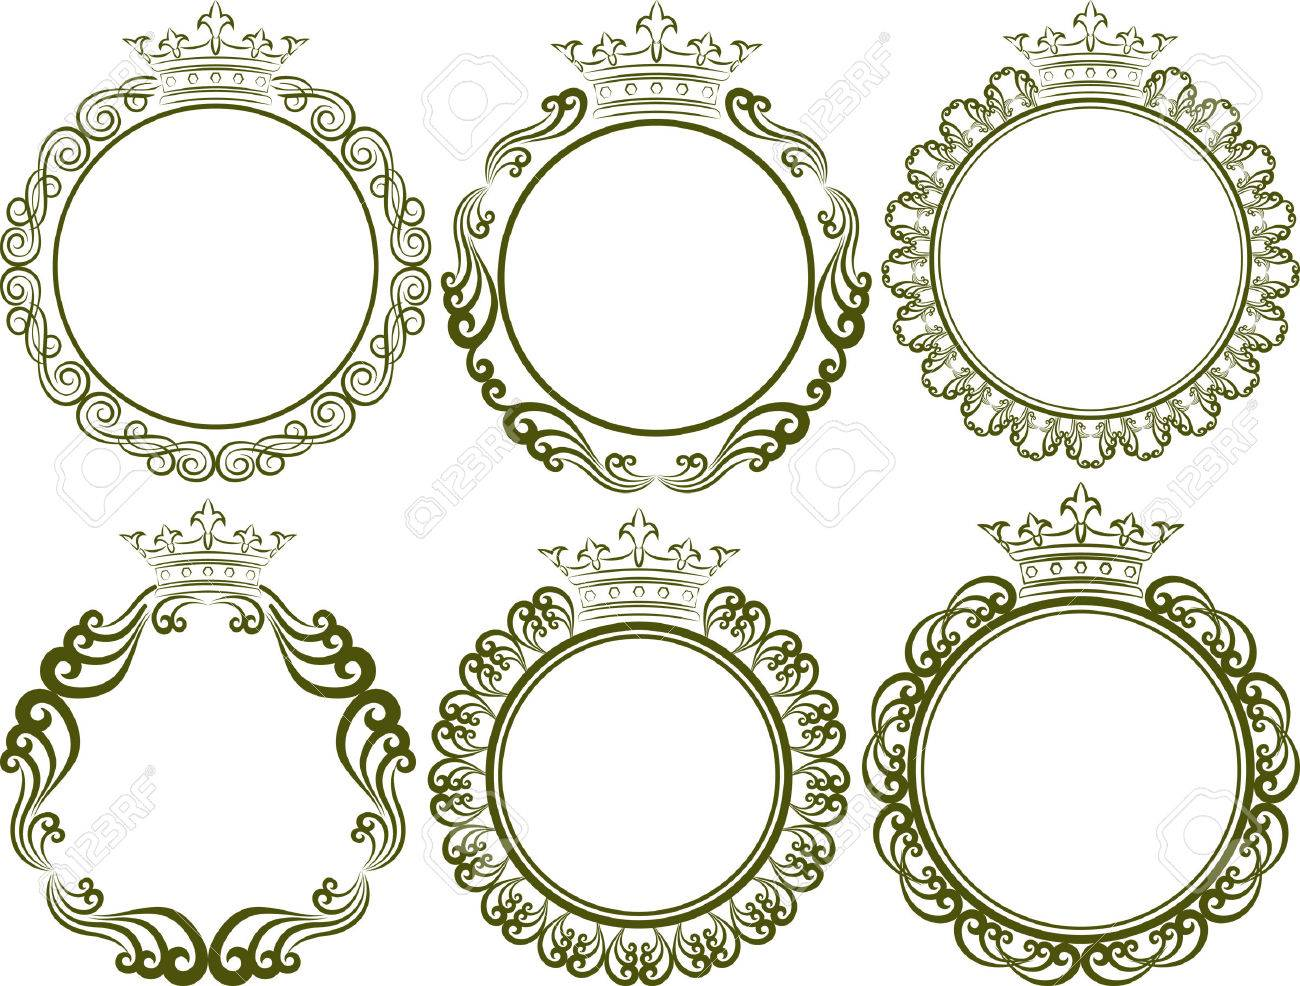 72b2e115082 set of royal frames with crown Stock Vector - 24025851